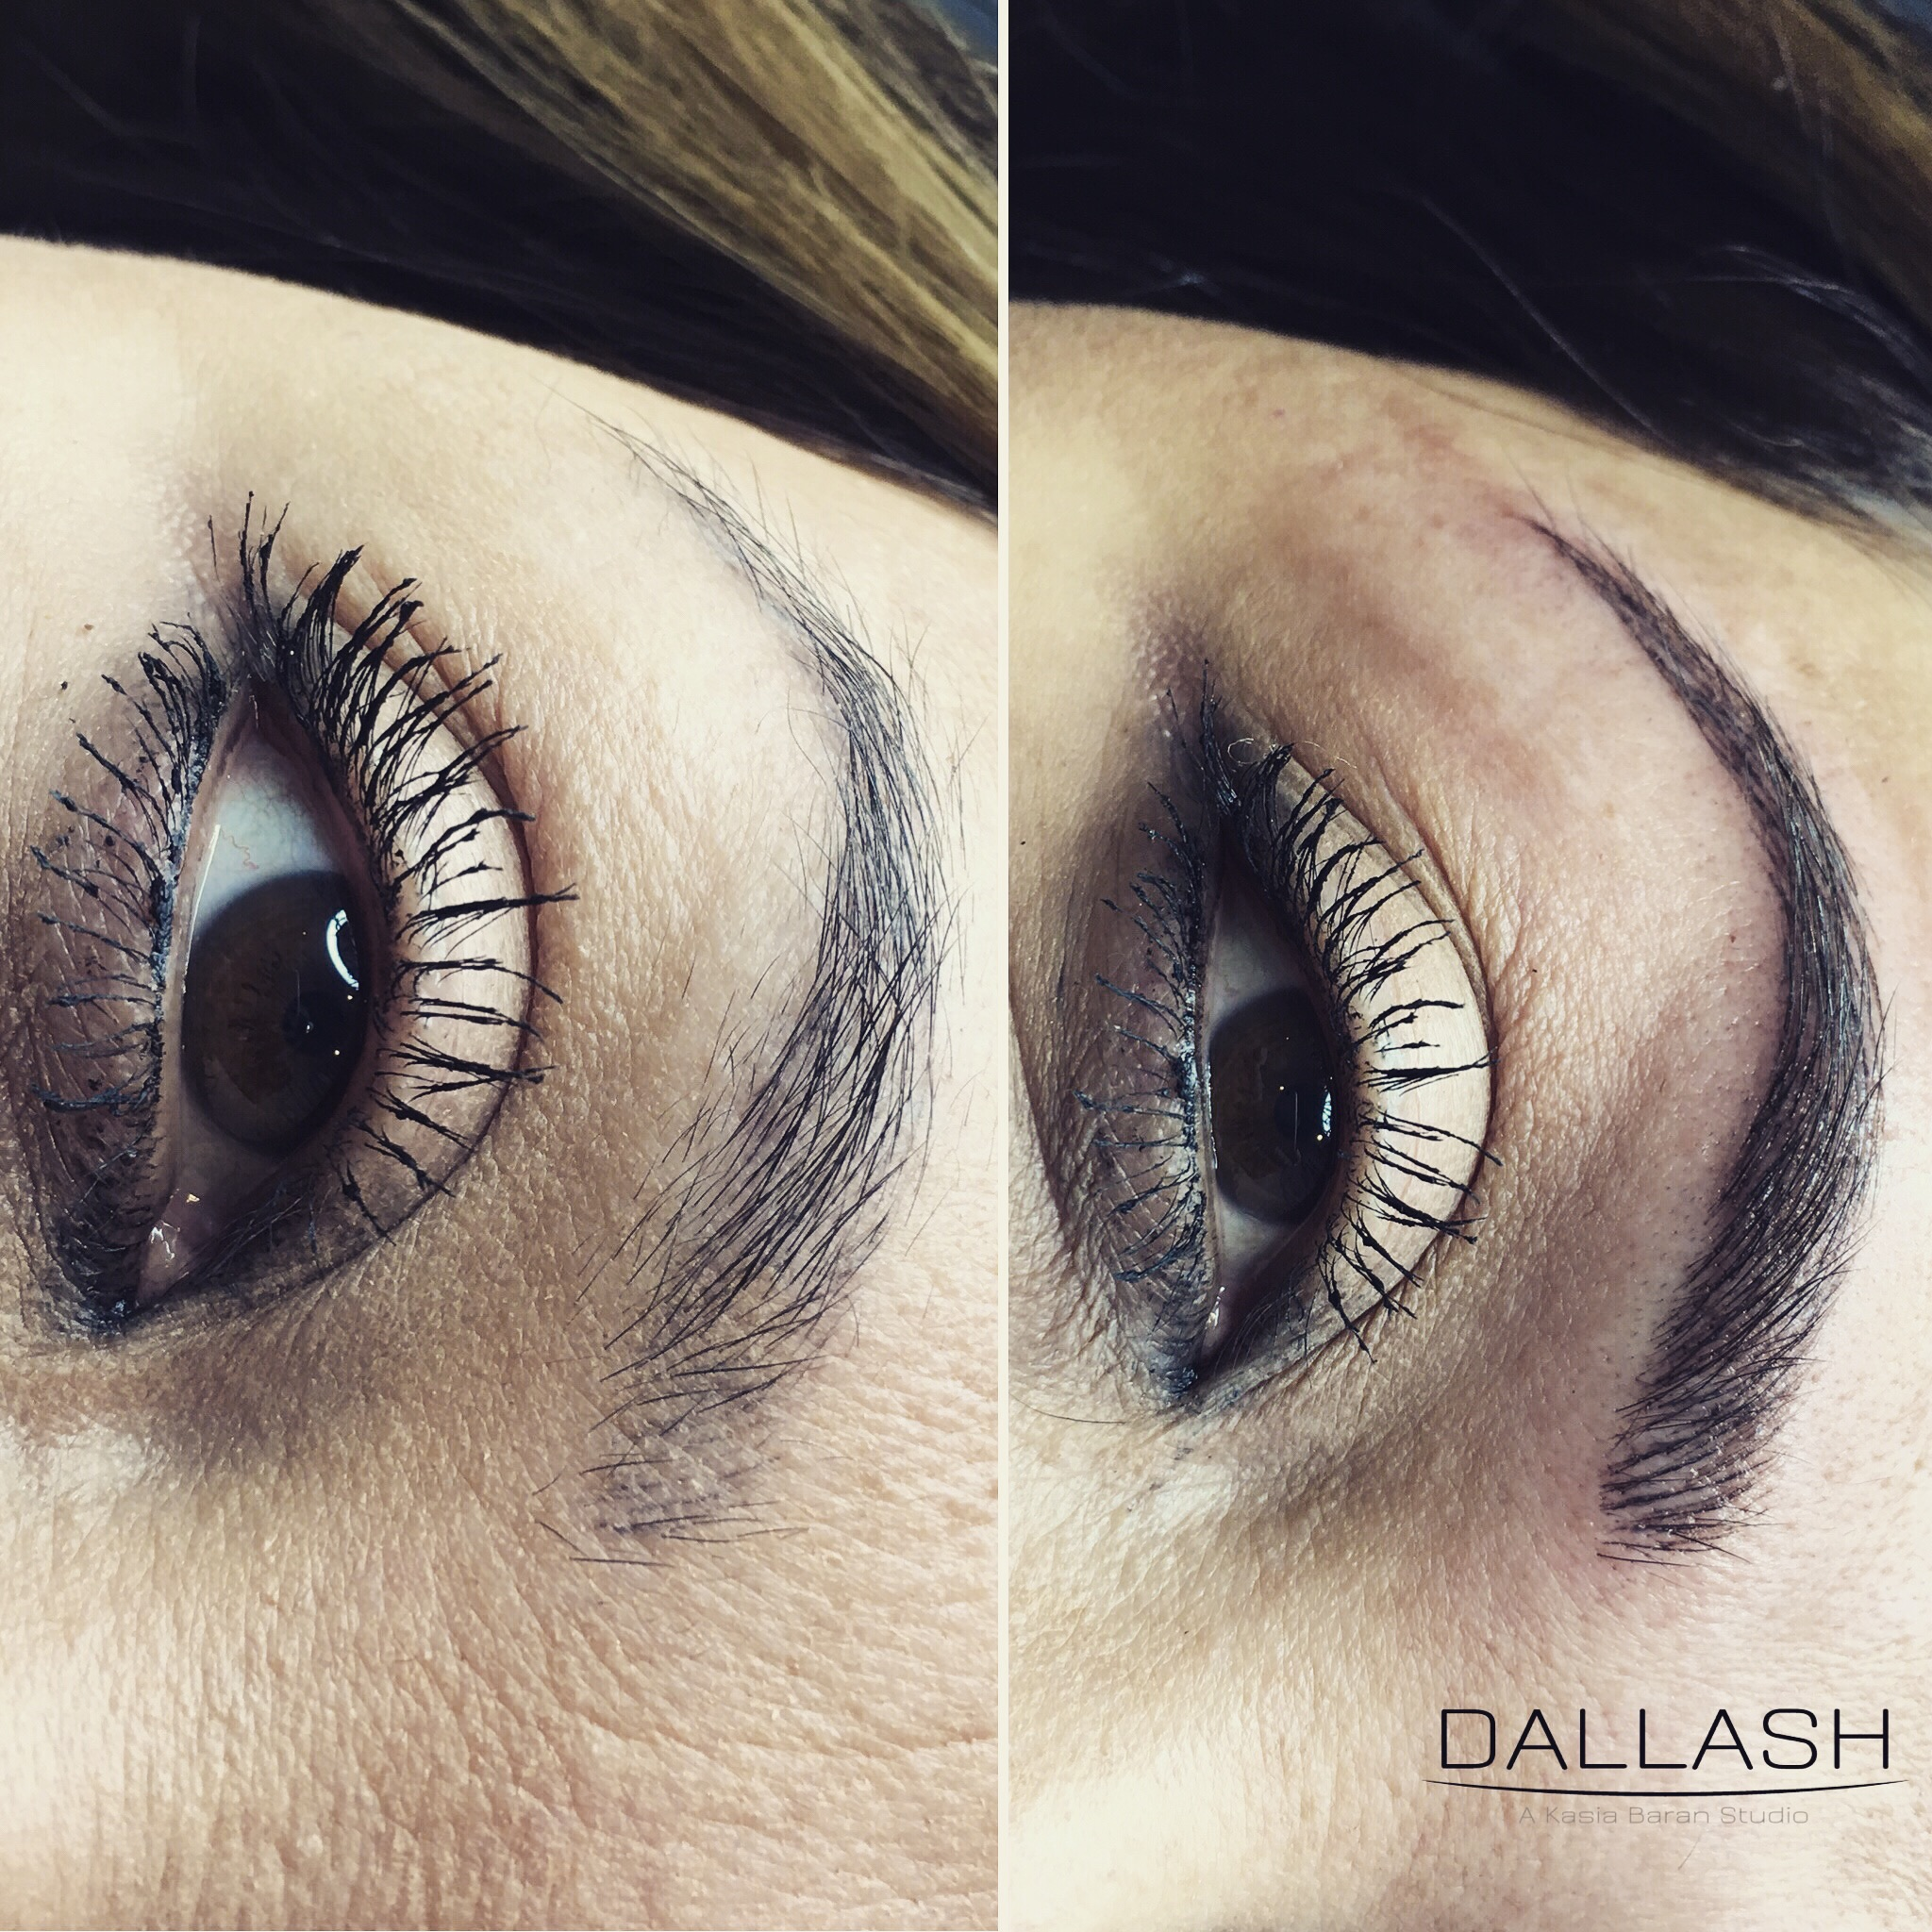 MICROBLADING-DALLAS-SEMIPERMANENET BROWS-EYEBROWS-3DBROWS-MICROBLADING-DALLAS-DALLASHSTUDI0.JPG